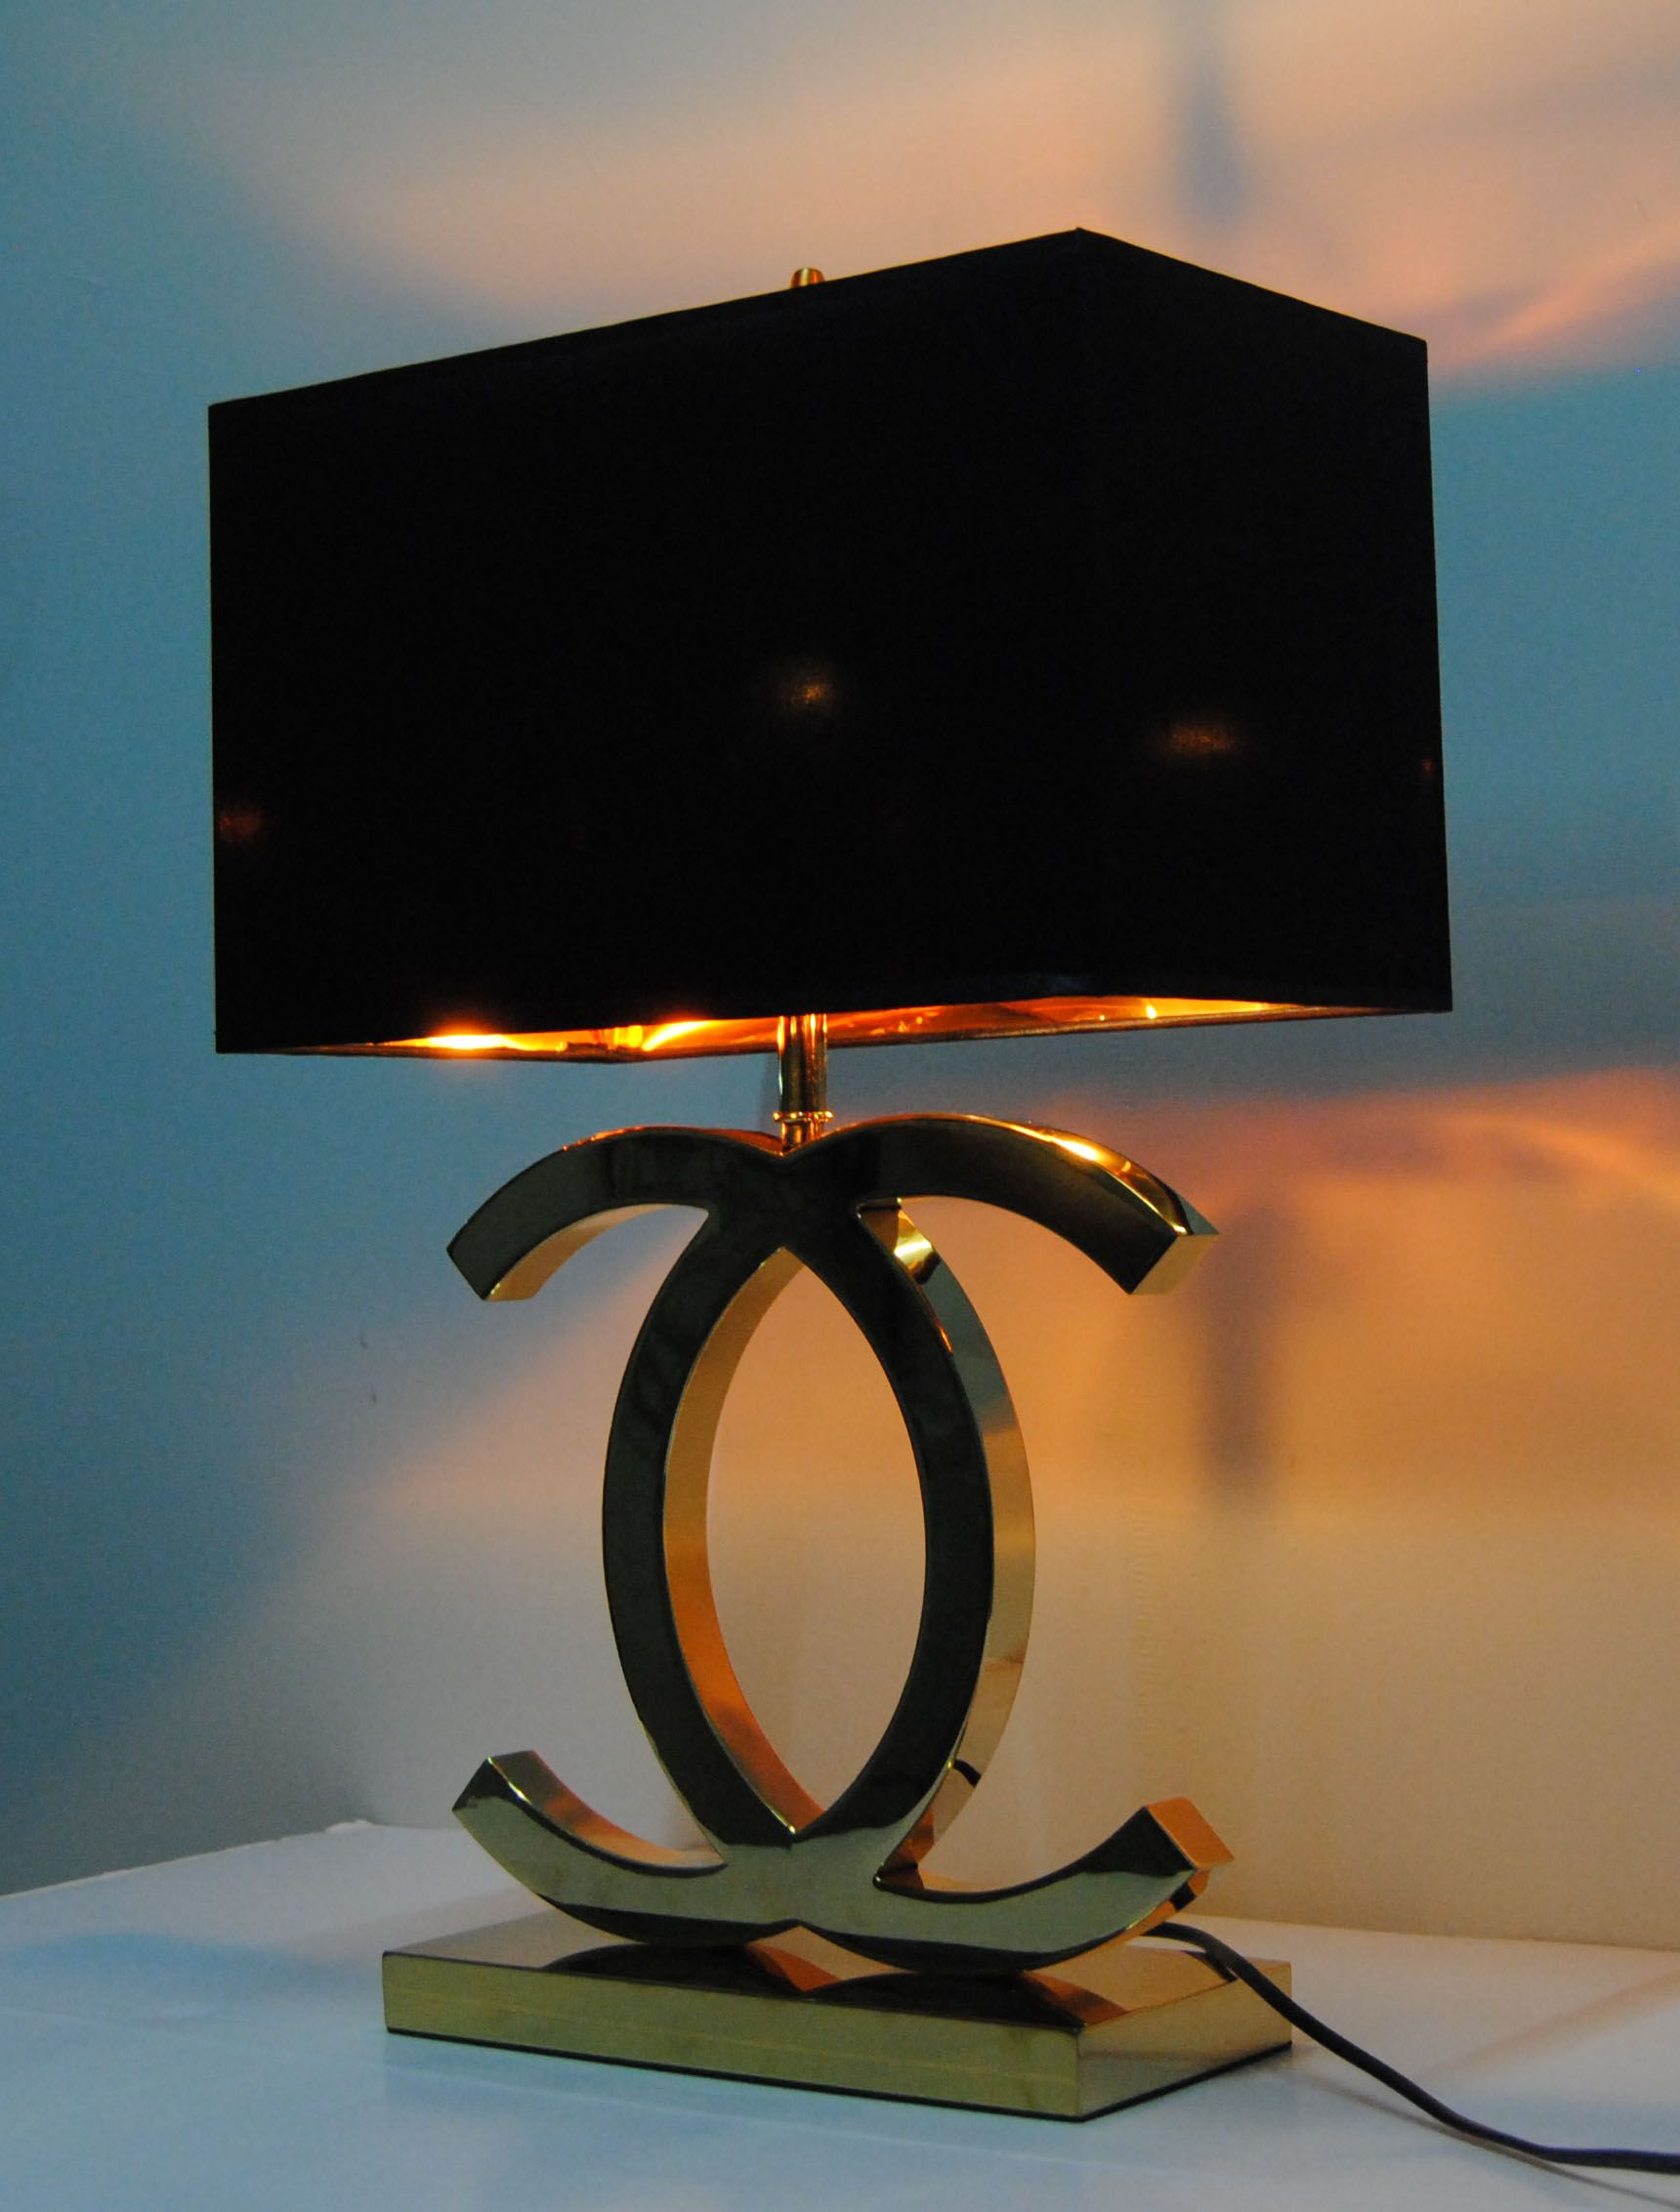 Chanel Lamps, Champagne Gold + Black Lampshade 100 Usd Online